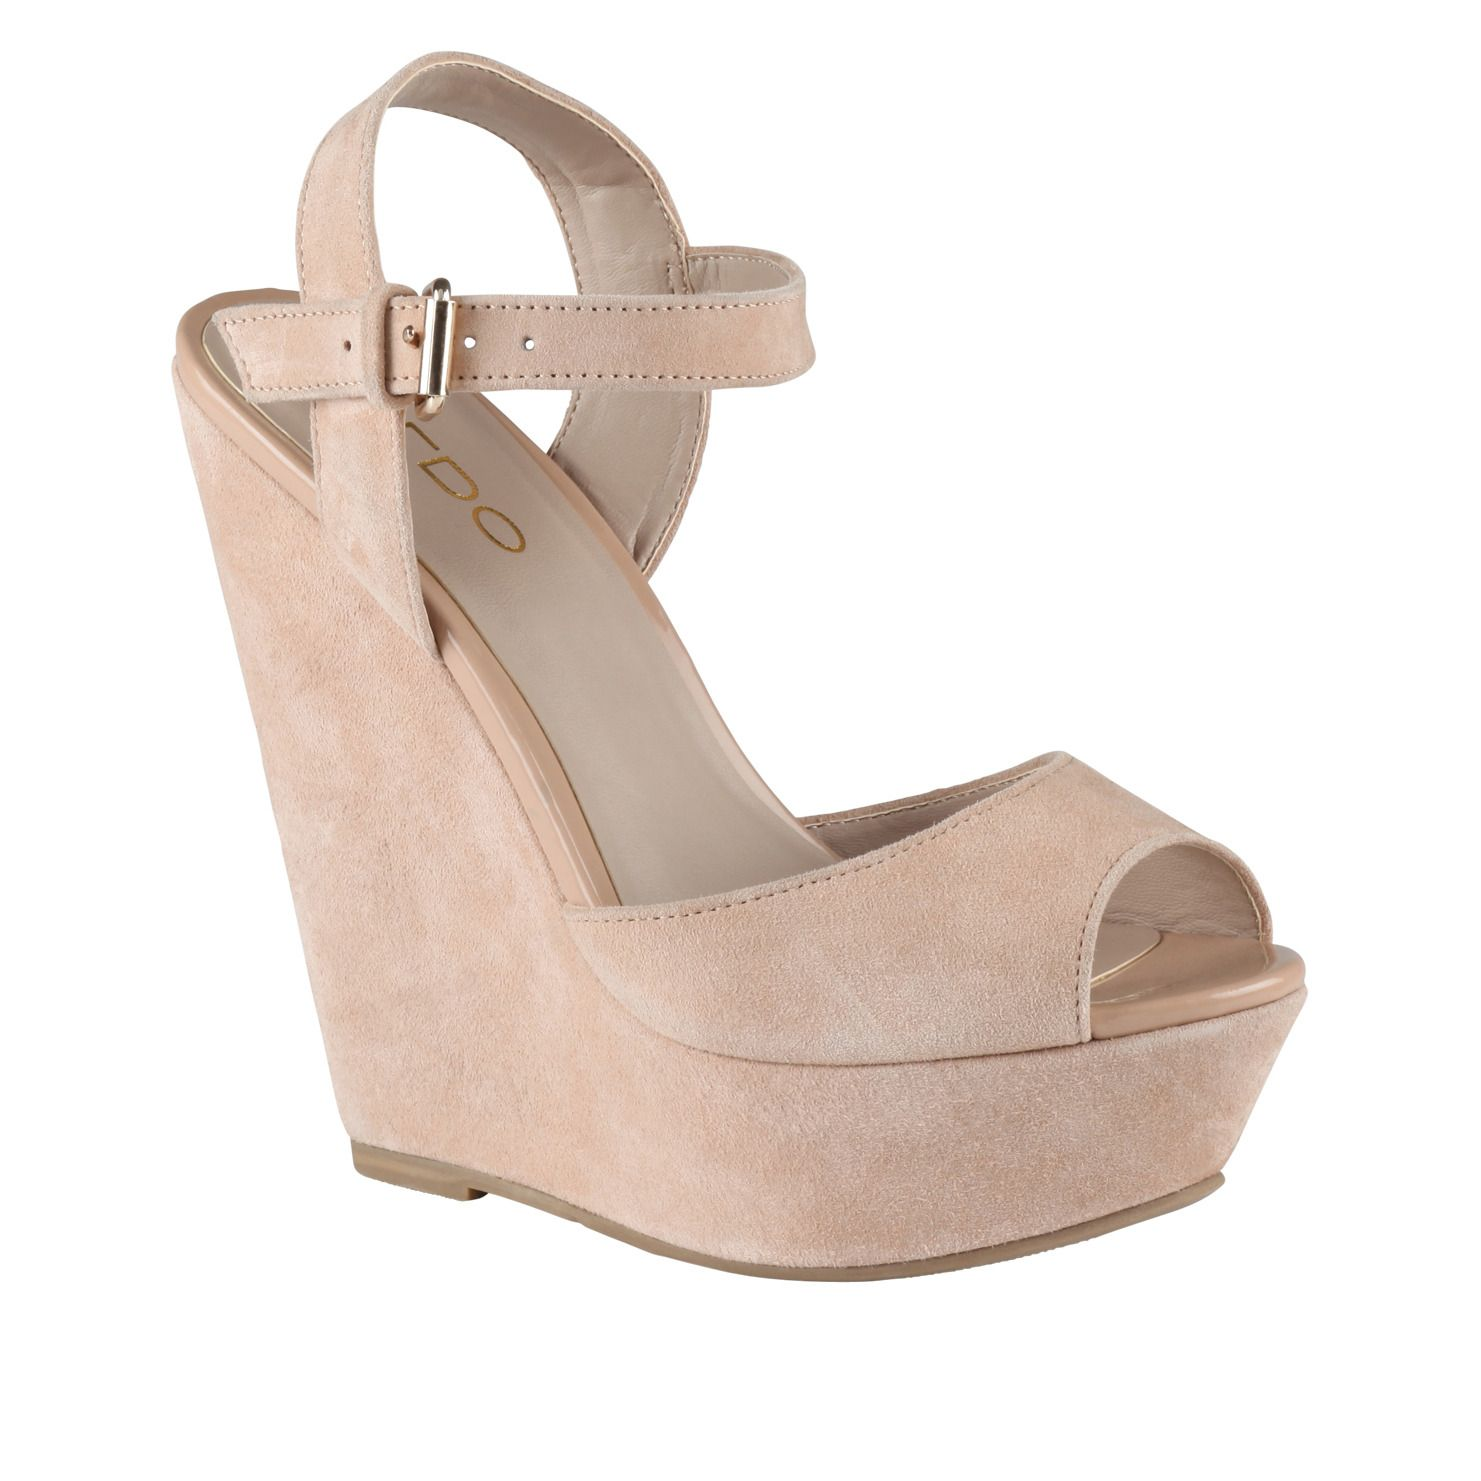 aldo shoes for women outlet pennsylvania lottery results